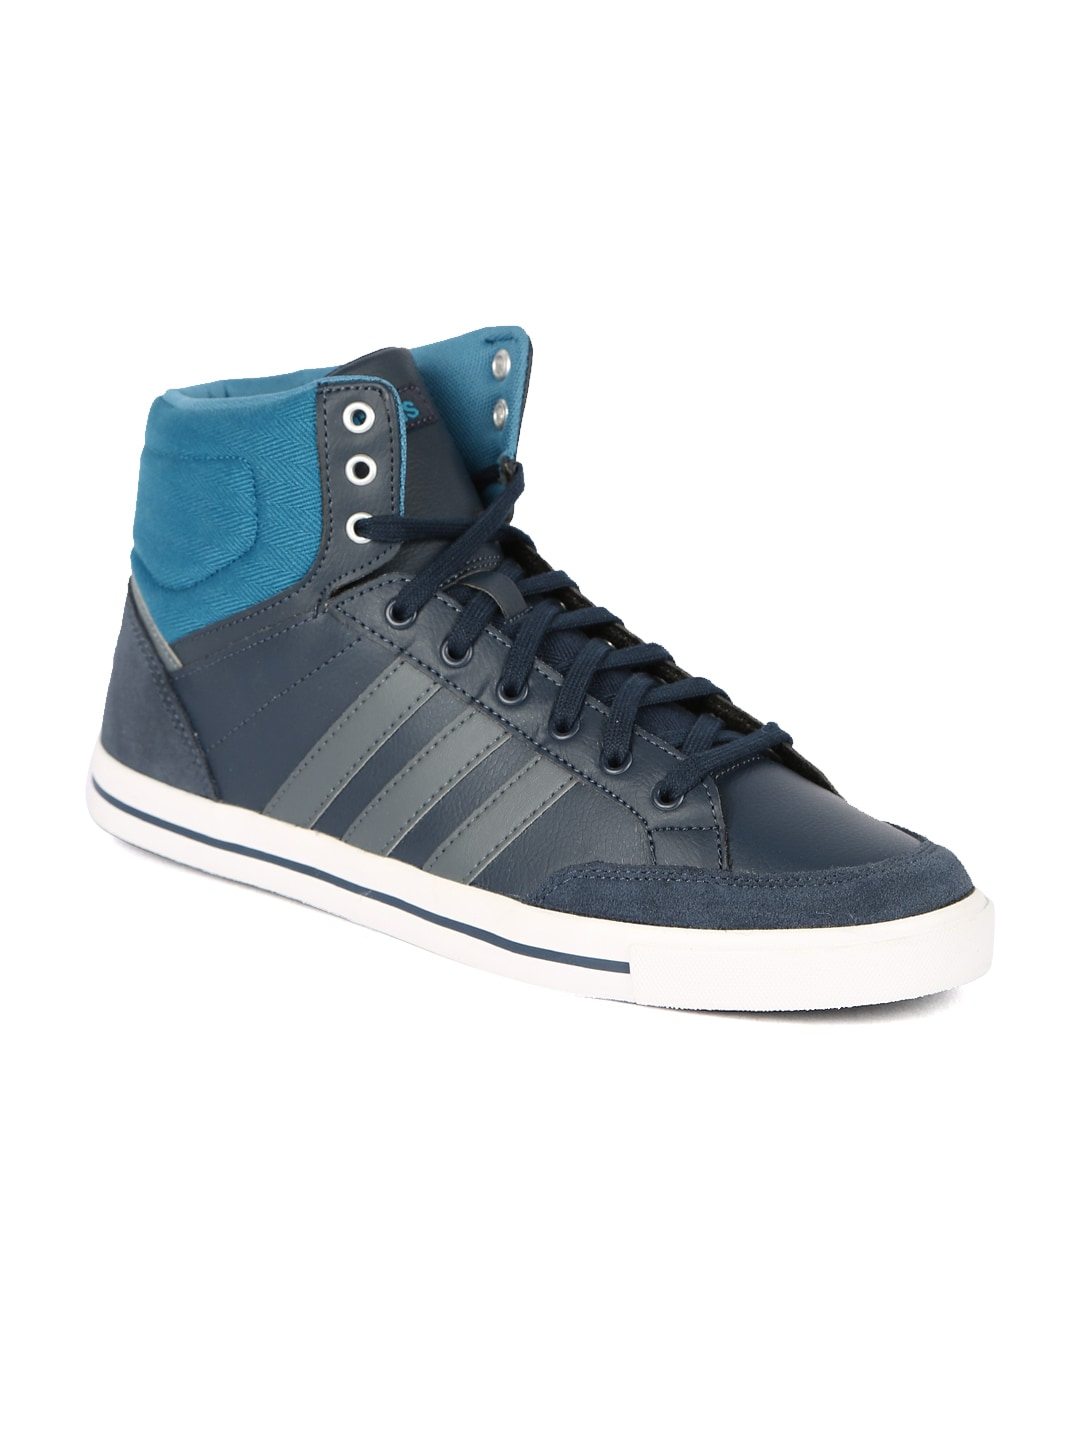 In Shoes Buy Neo Adidas India Online OUC1pH